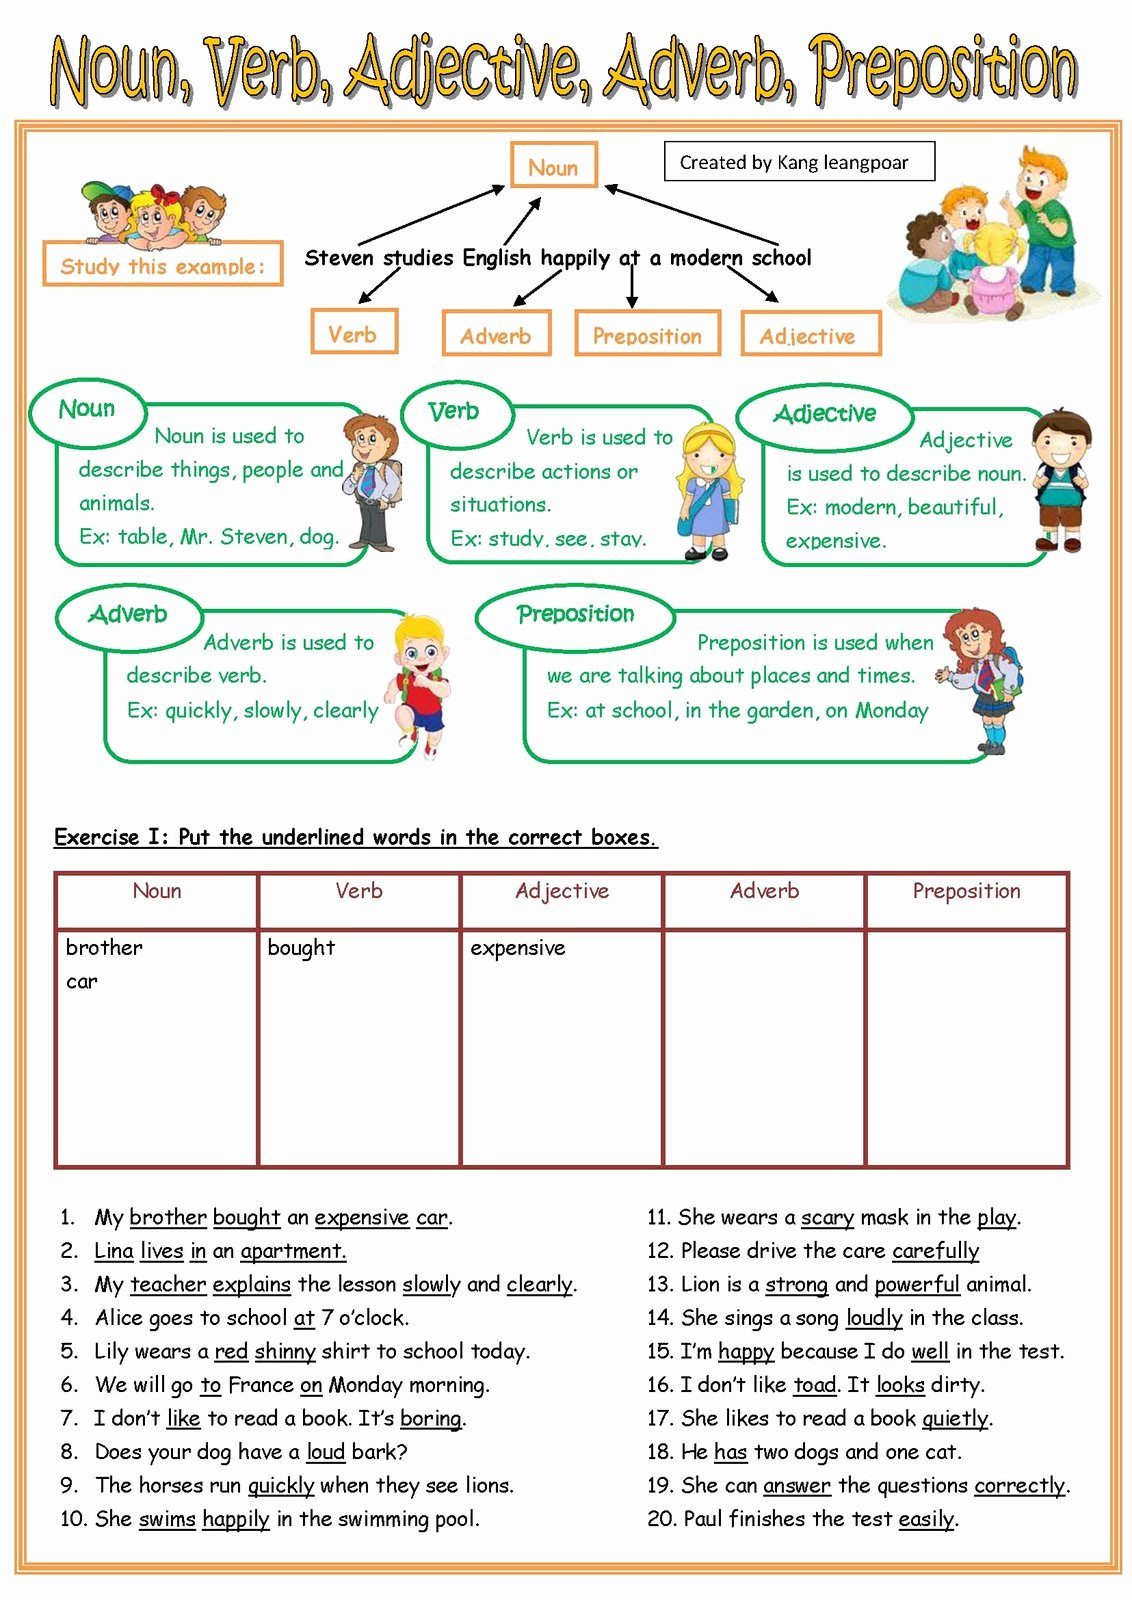 Nouns and Verbs Worksheet New Kang Leangpoar កាំង លាងប៉ោ My Esl Printable Worksheet